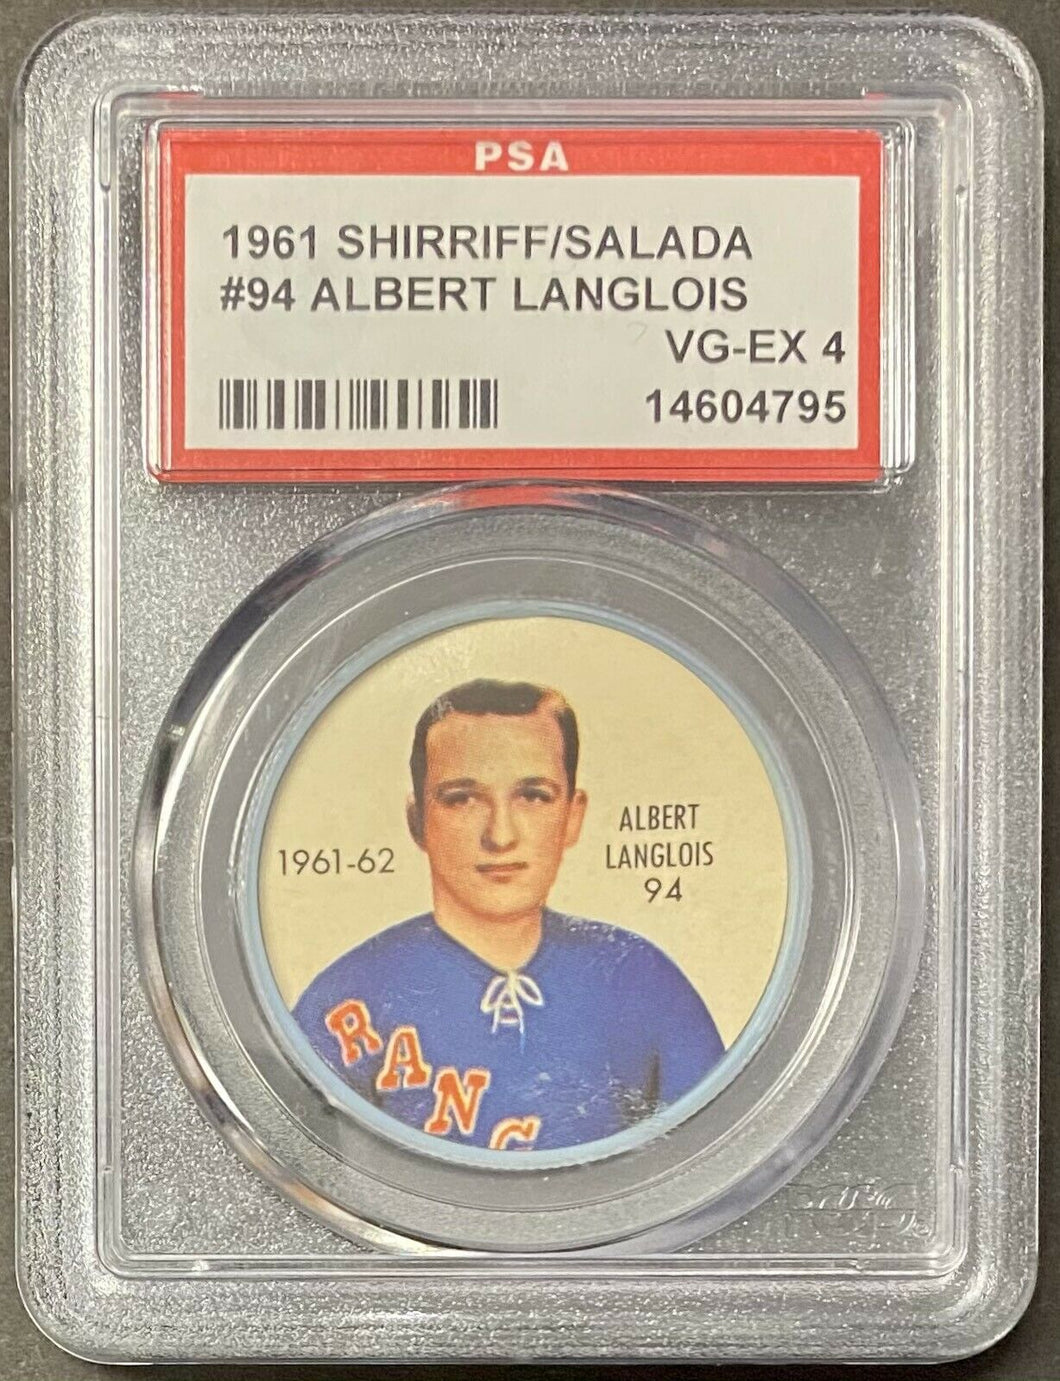 1961 Shirriff/Salada NHL New York Rangers Hockey Albert Langlois PSA Cert Coin